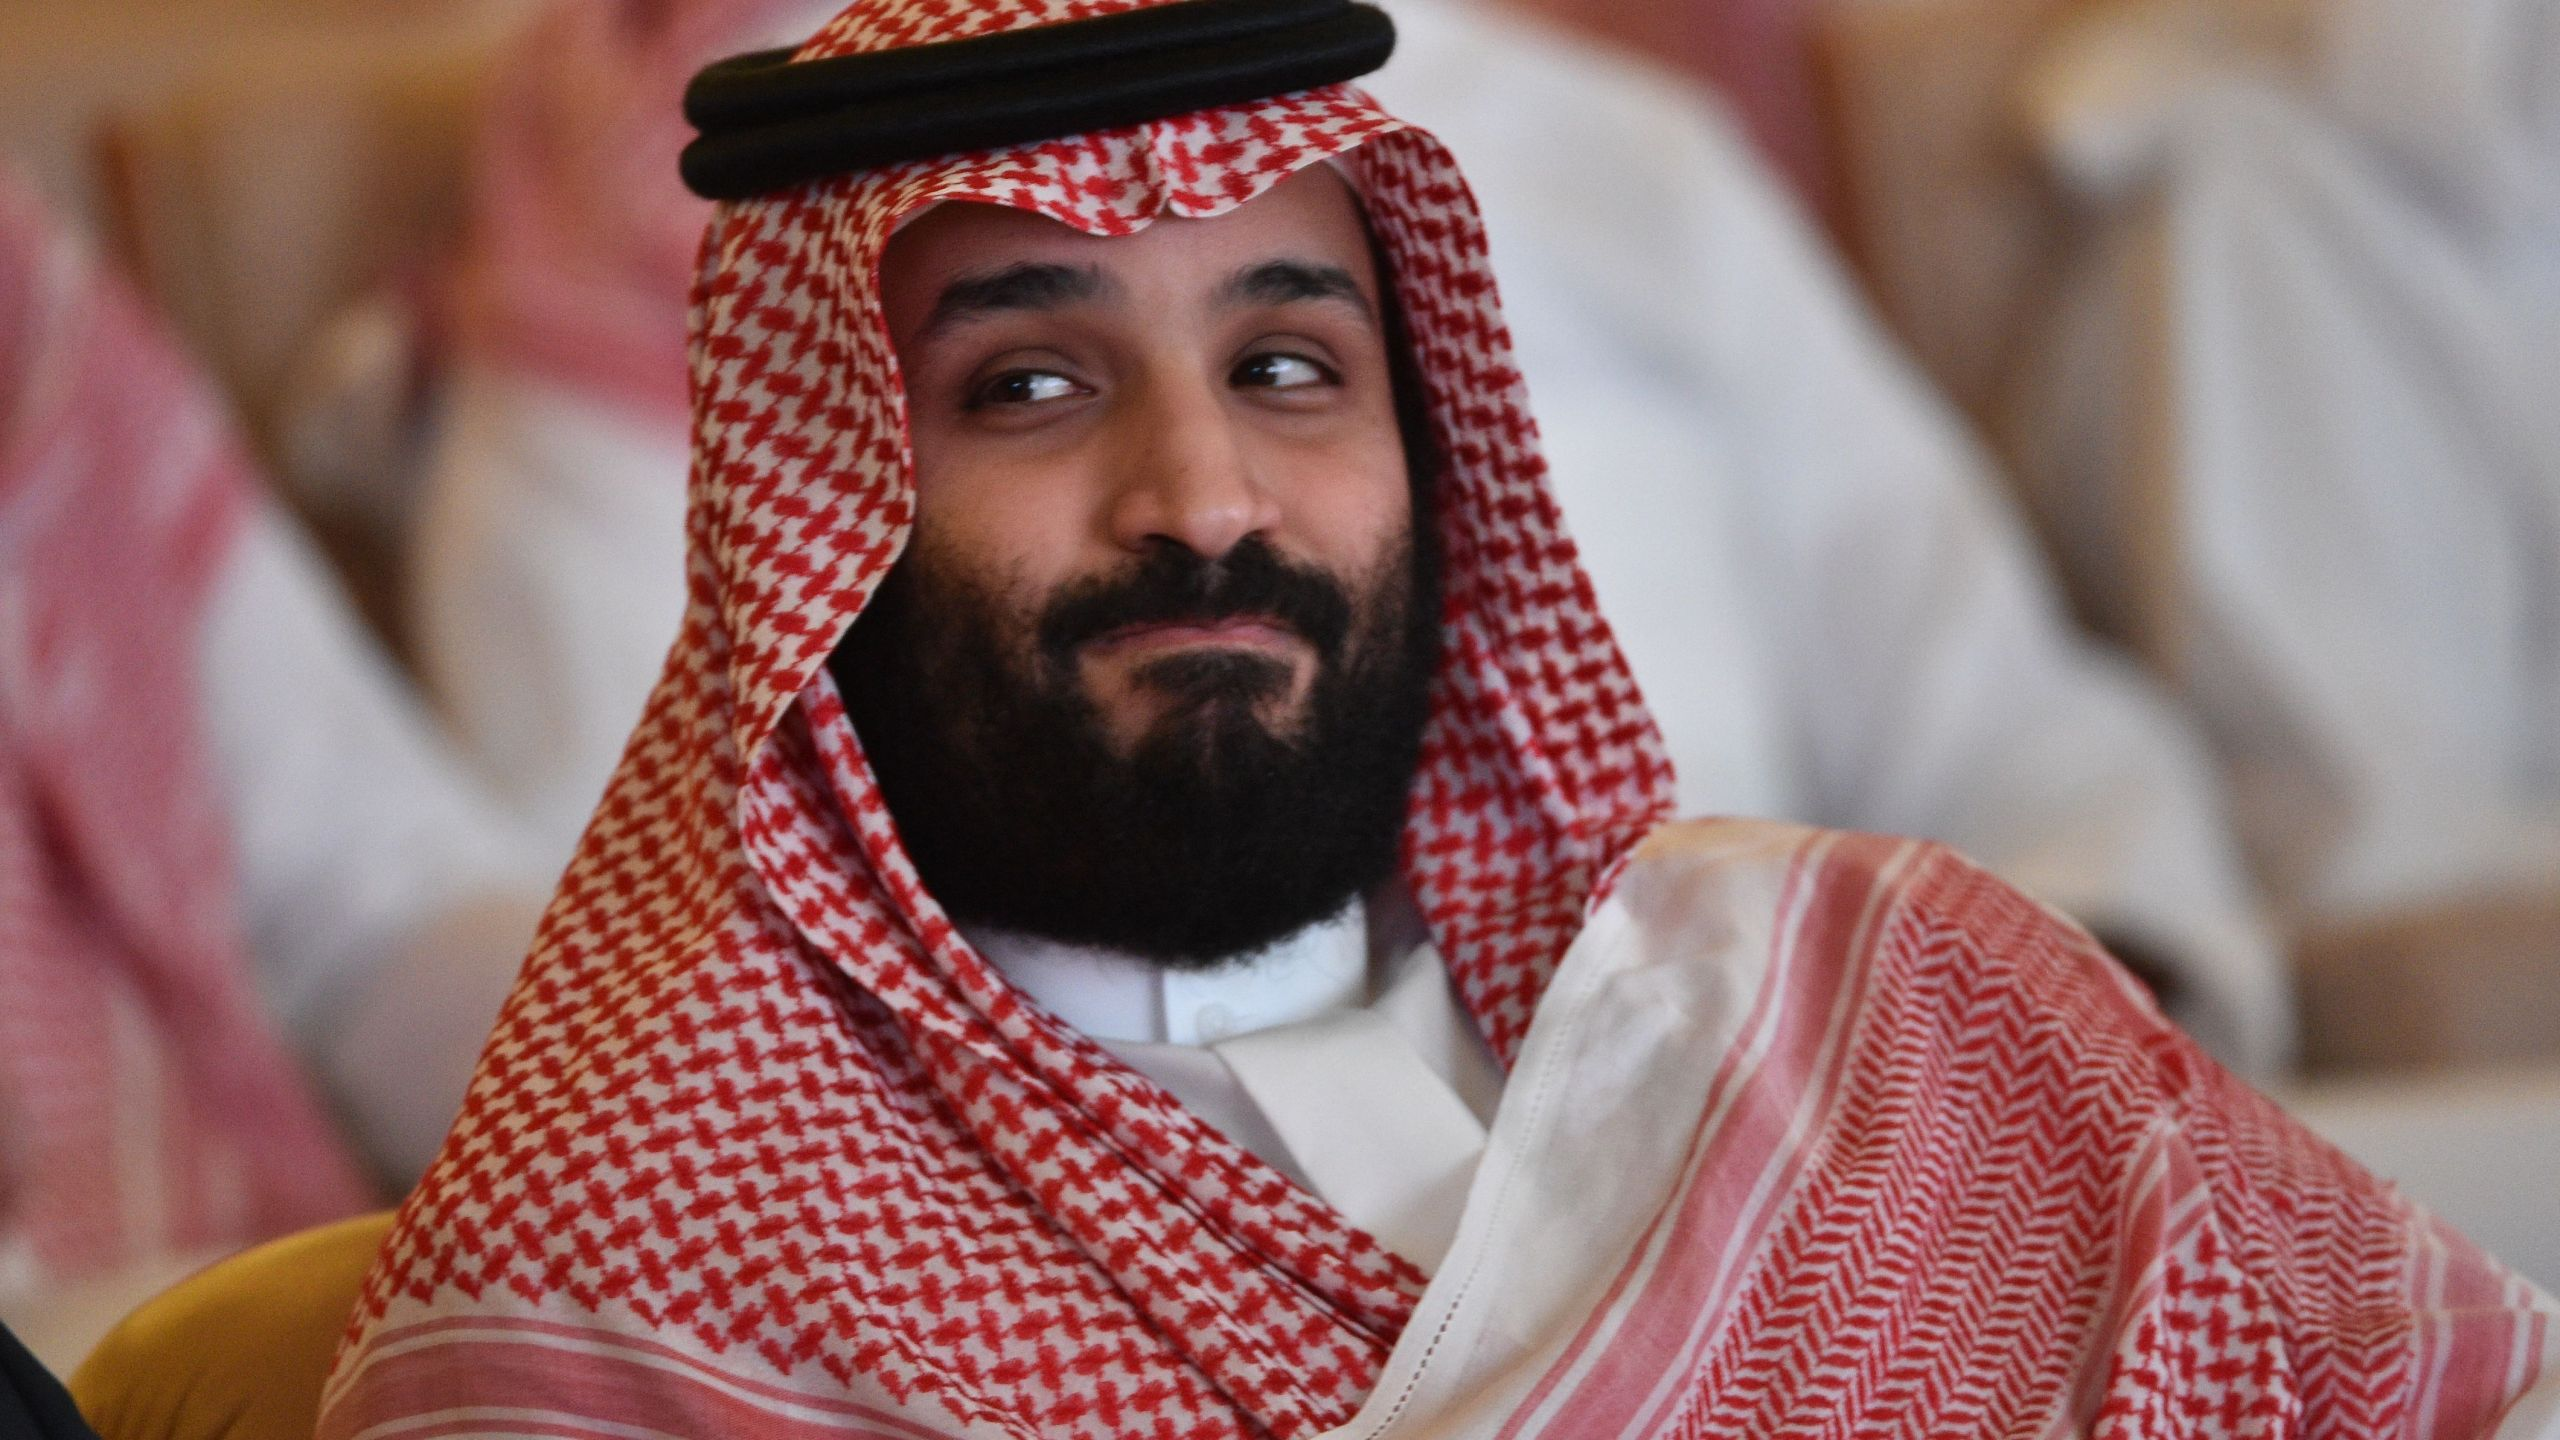 Saudi Crown Prince Mohammed bin Salman attends the Future Investment Initiative conference in Riyadh on Oct. 23, 2018. (Credit: FAYEZ NURELDINE/AFP/Getty Images)